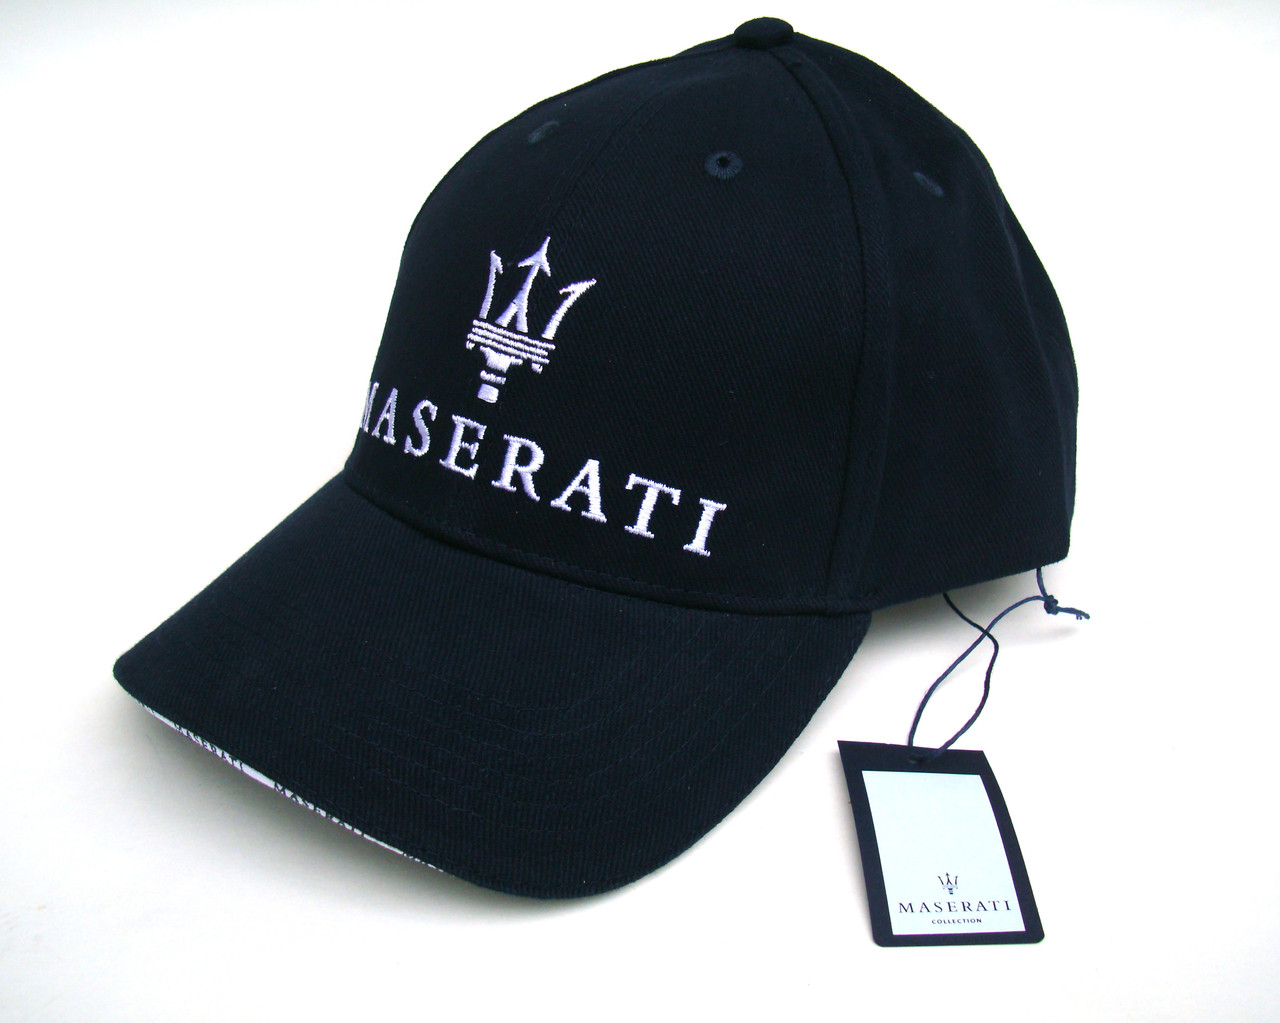 Fit Maserati Funsport Pink Baseball Cap Hat with Emblem for Car Accessories